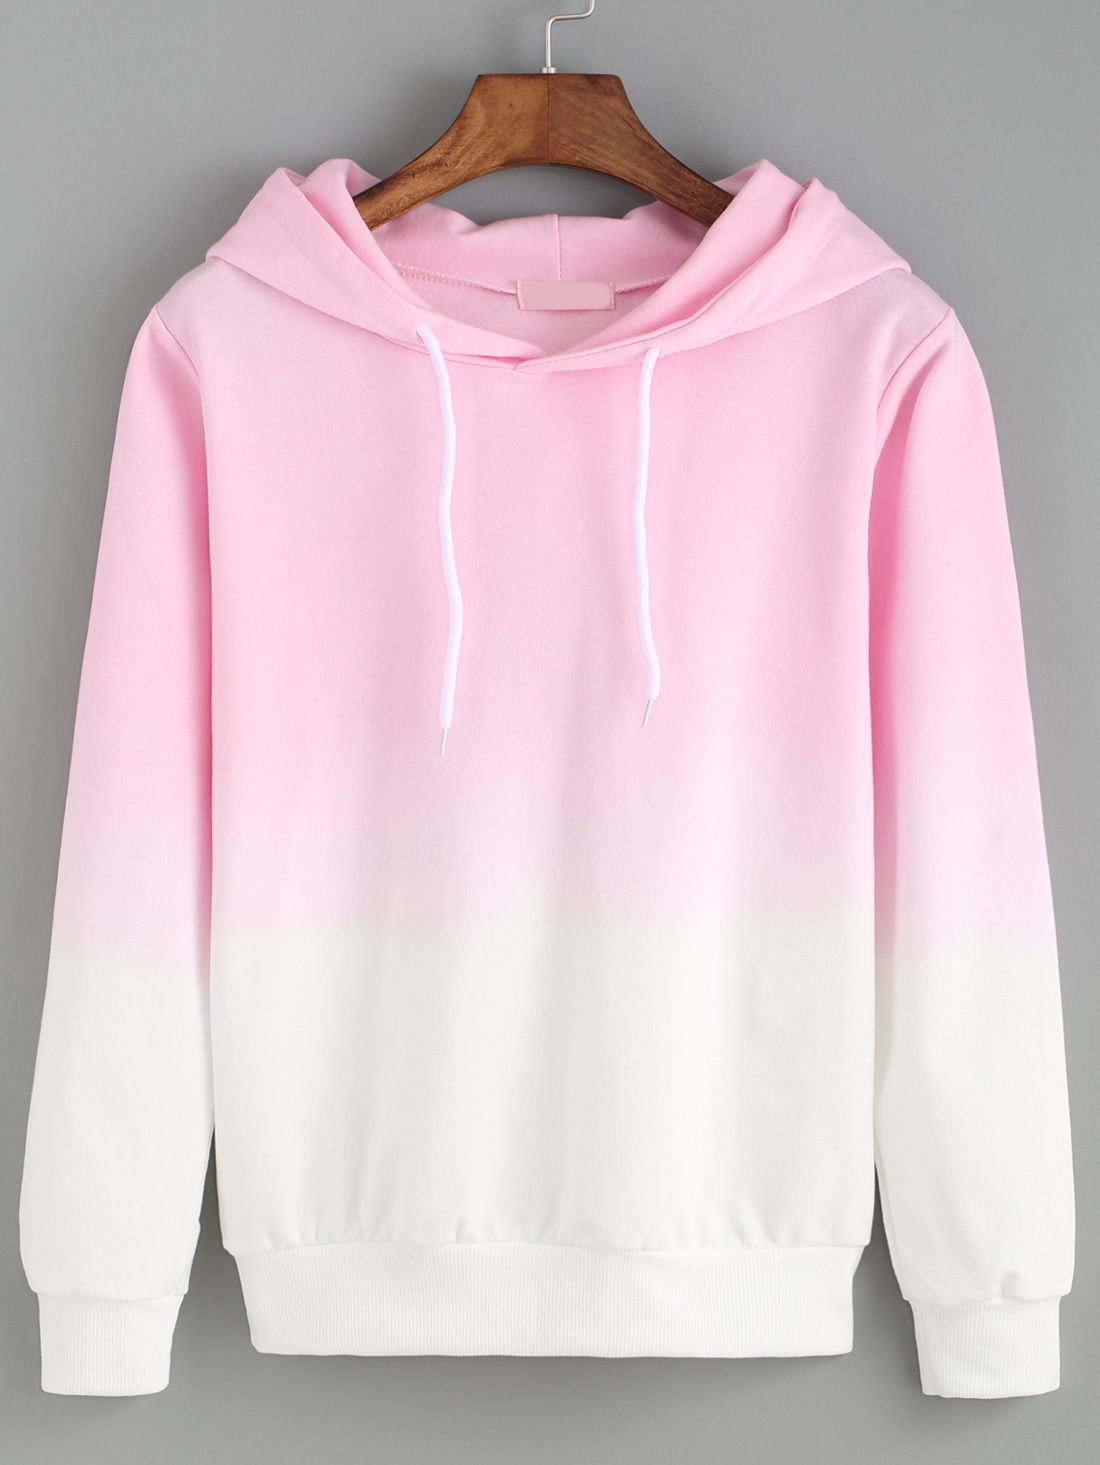 6a1790d37b0b So creazy ! Just love ombre style so much ! This pink hoodie ...